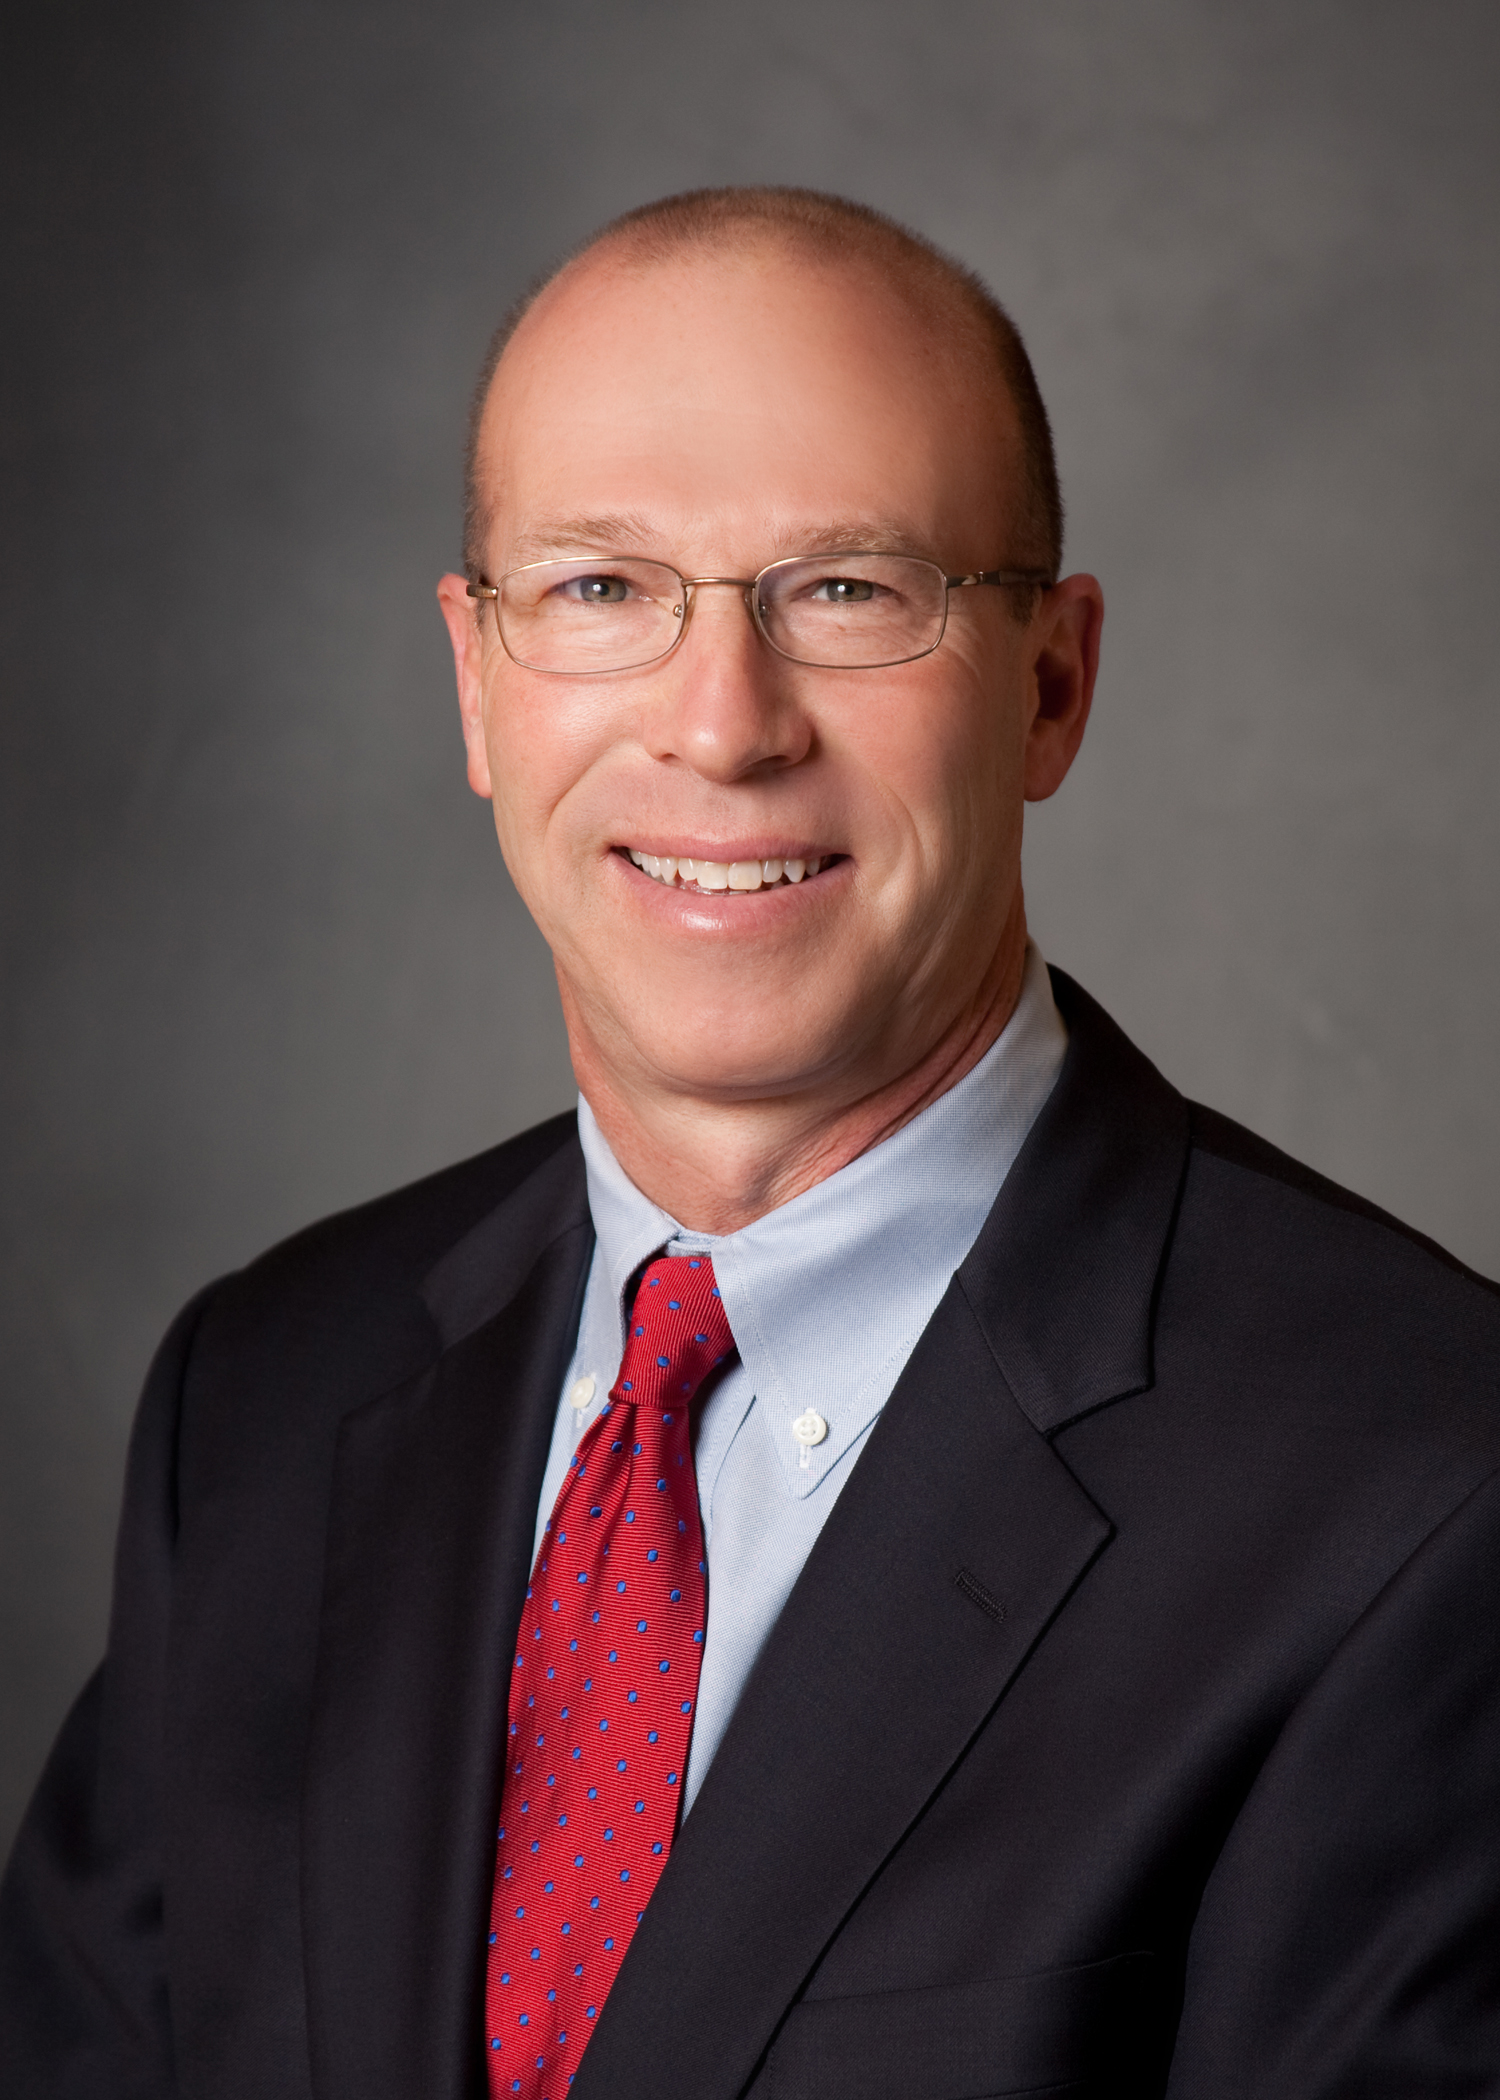 Sheldon L. Cohn, MD